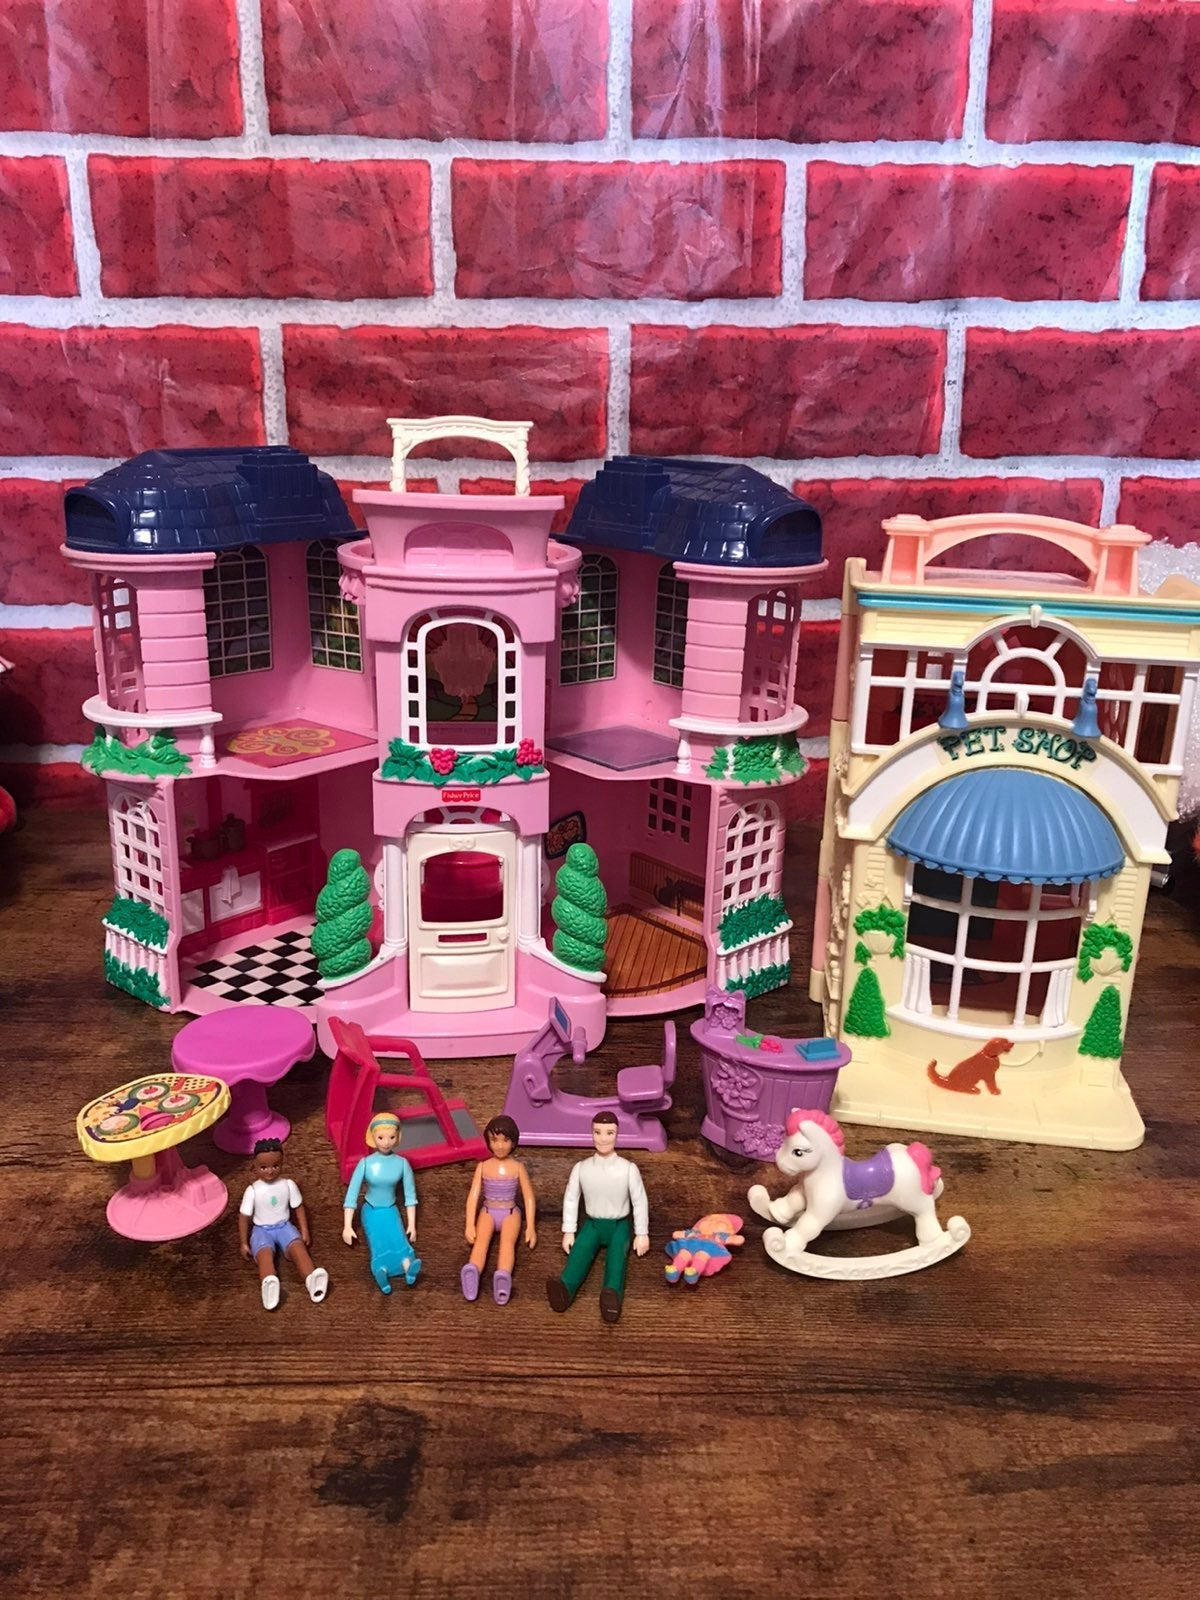 Fisher Price Sweet Streets playset